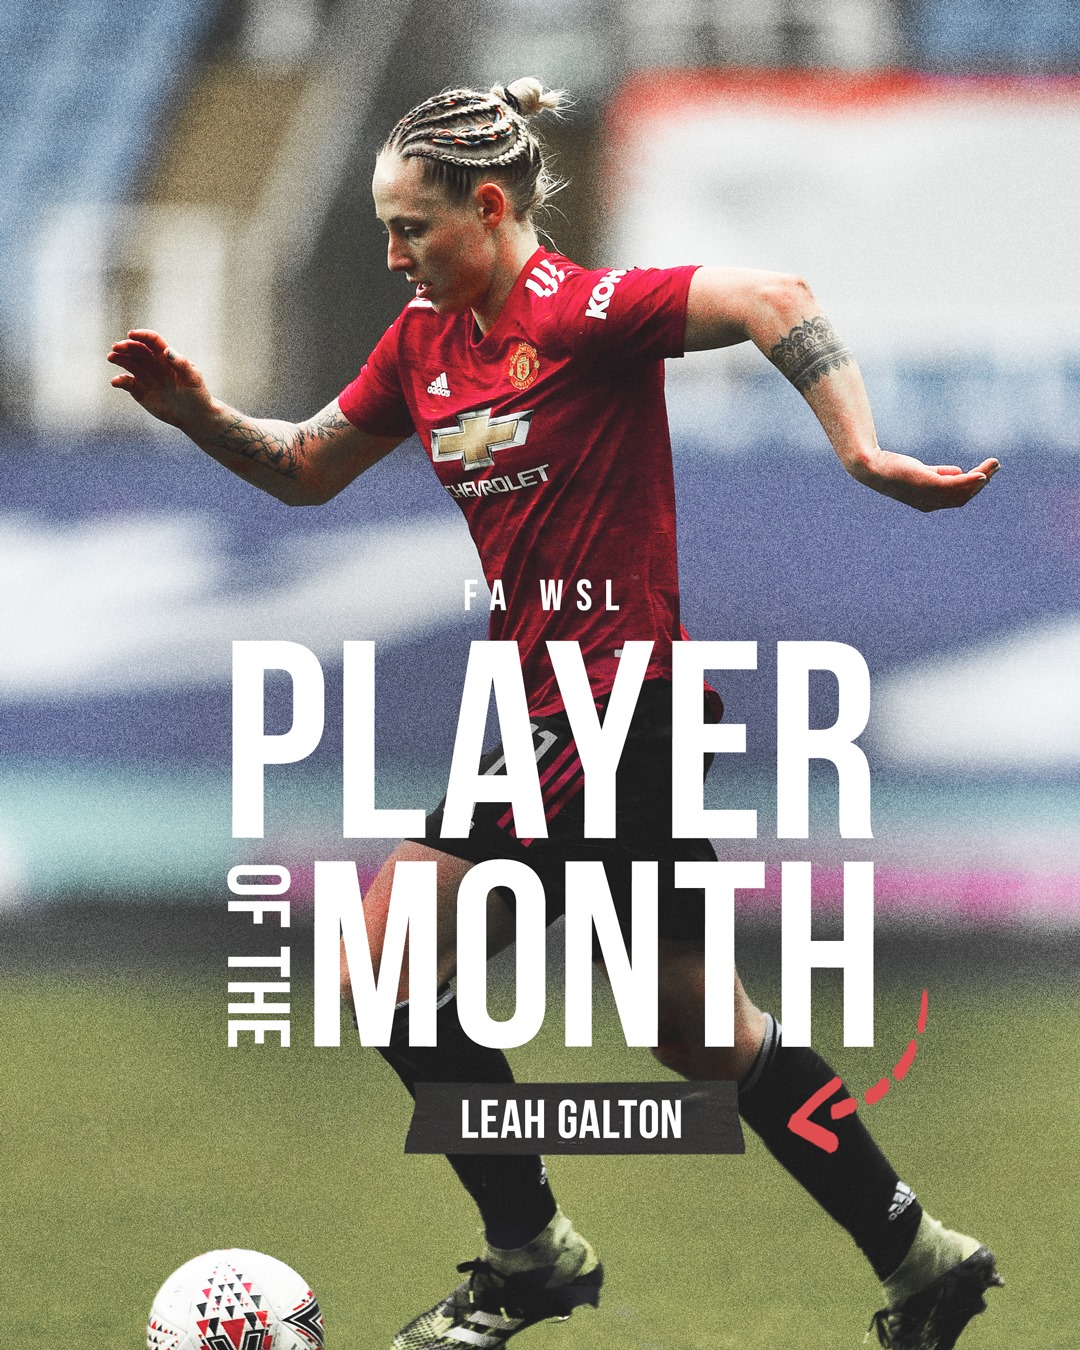 Player of the mont manutd